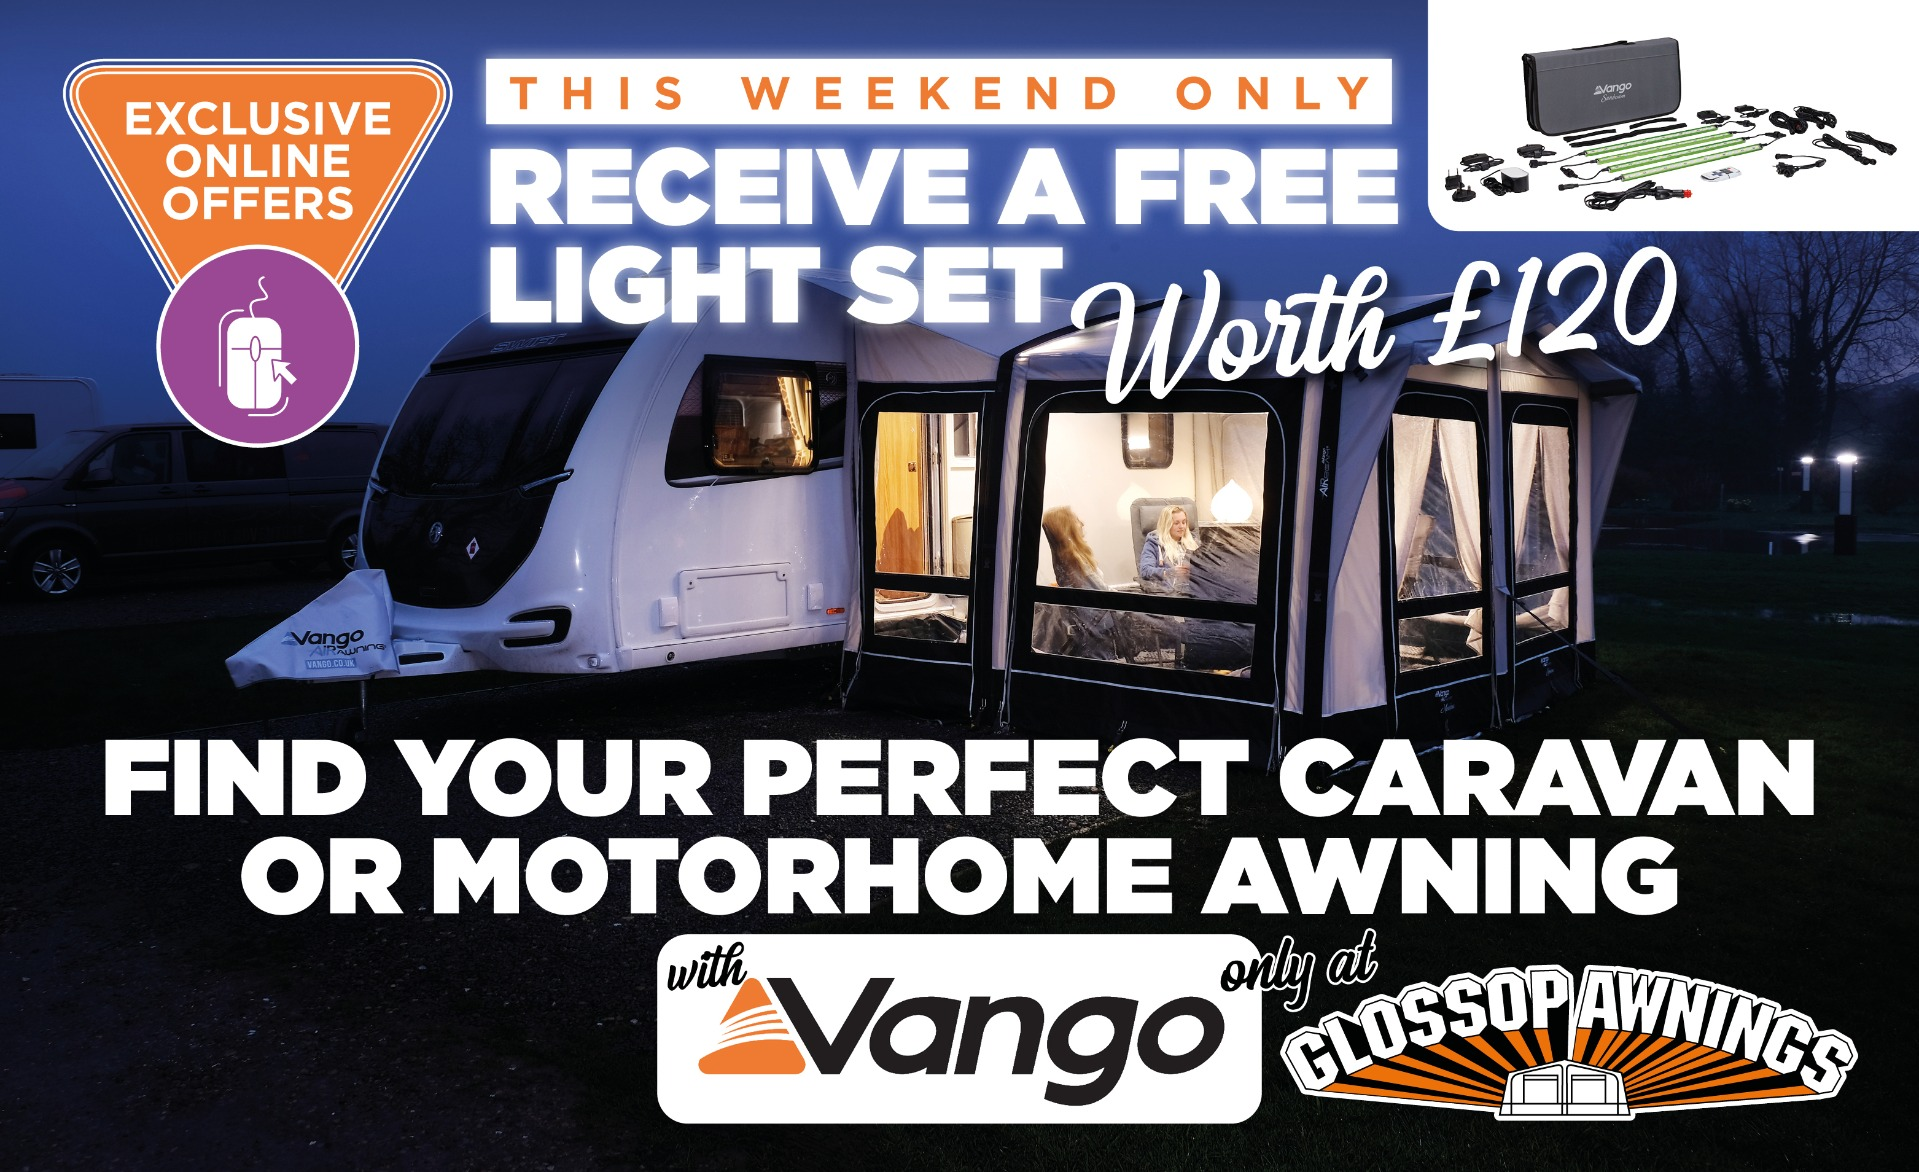 Vango Promotion Weekend